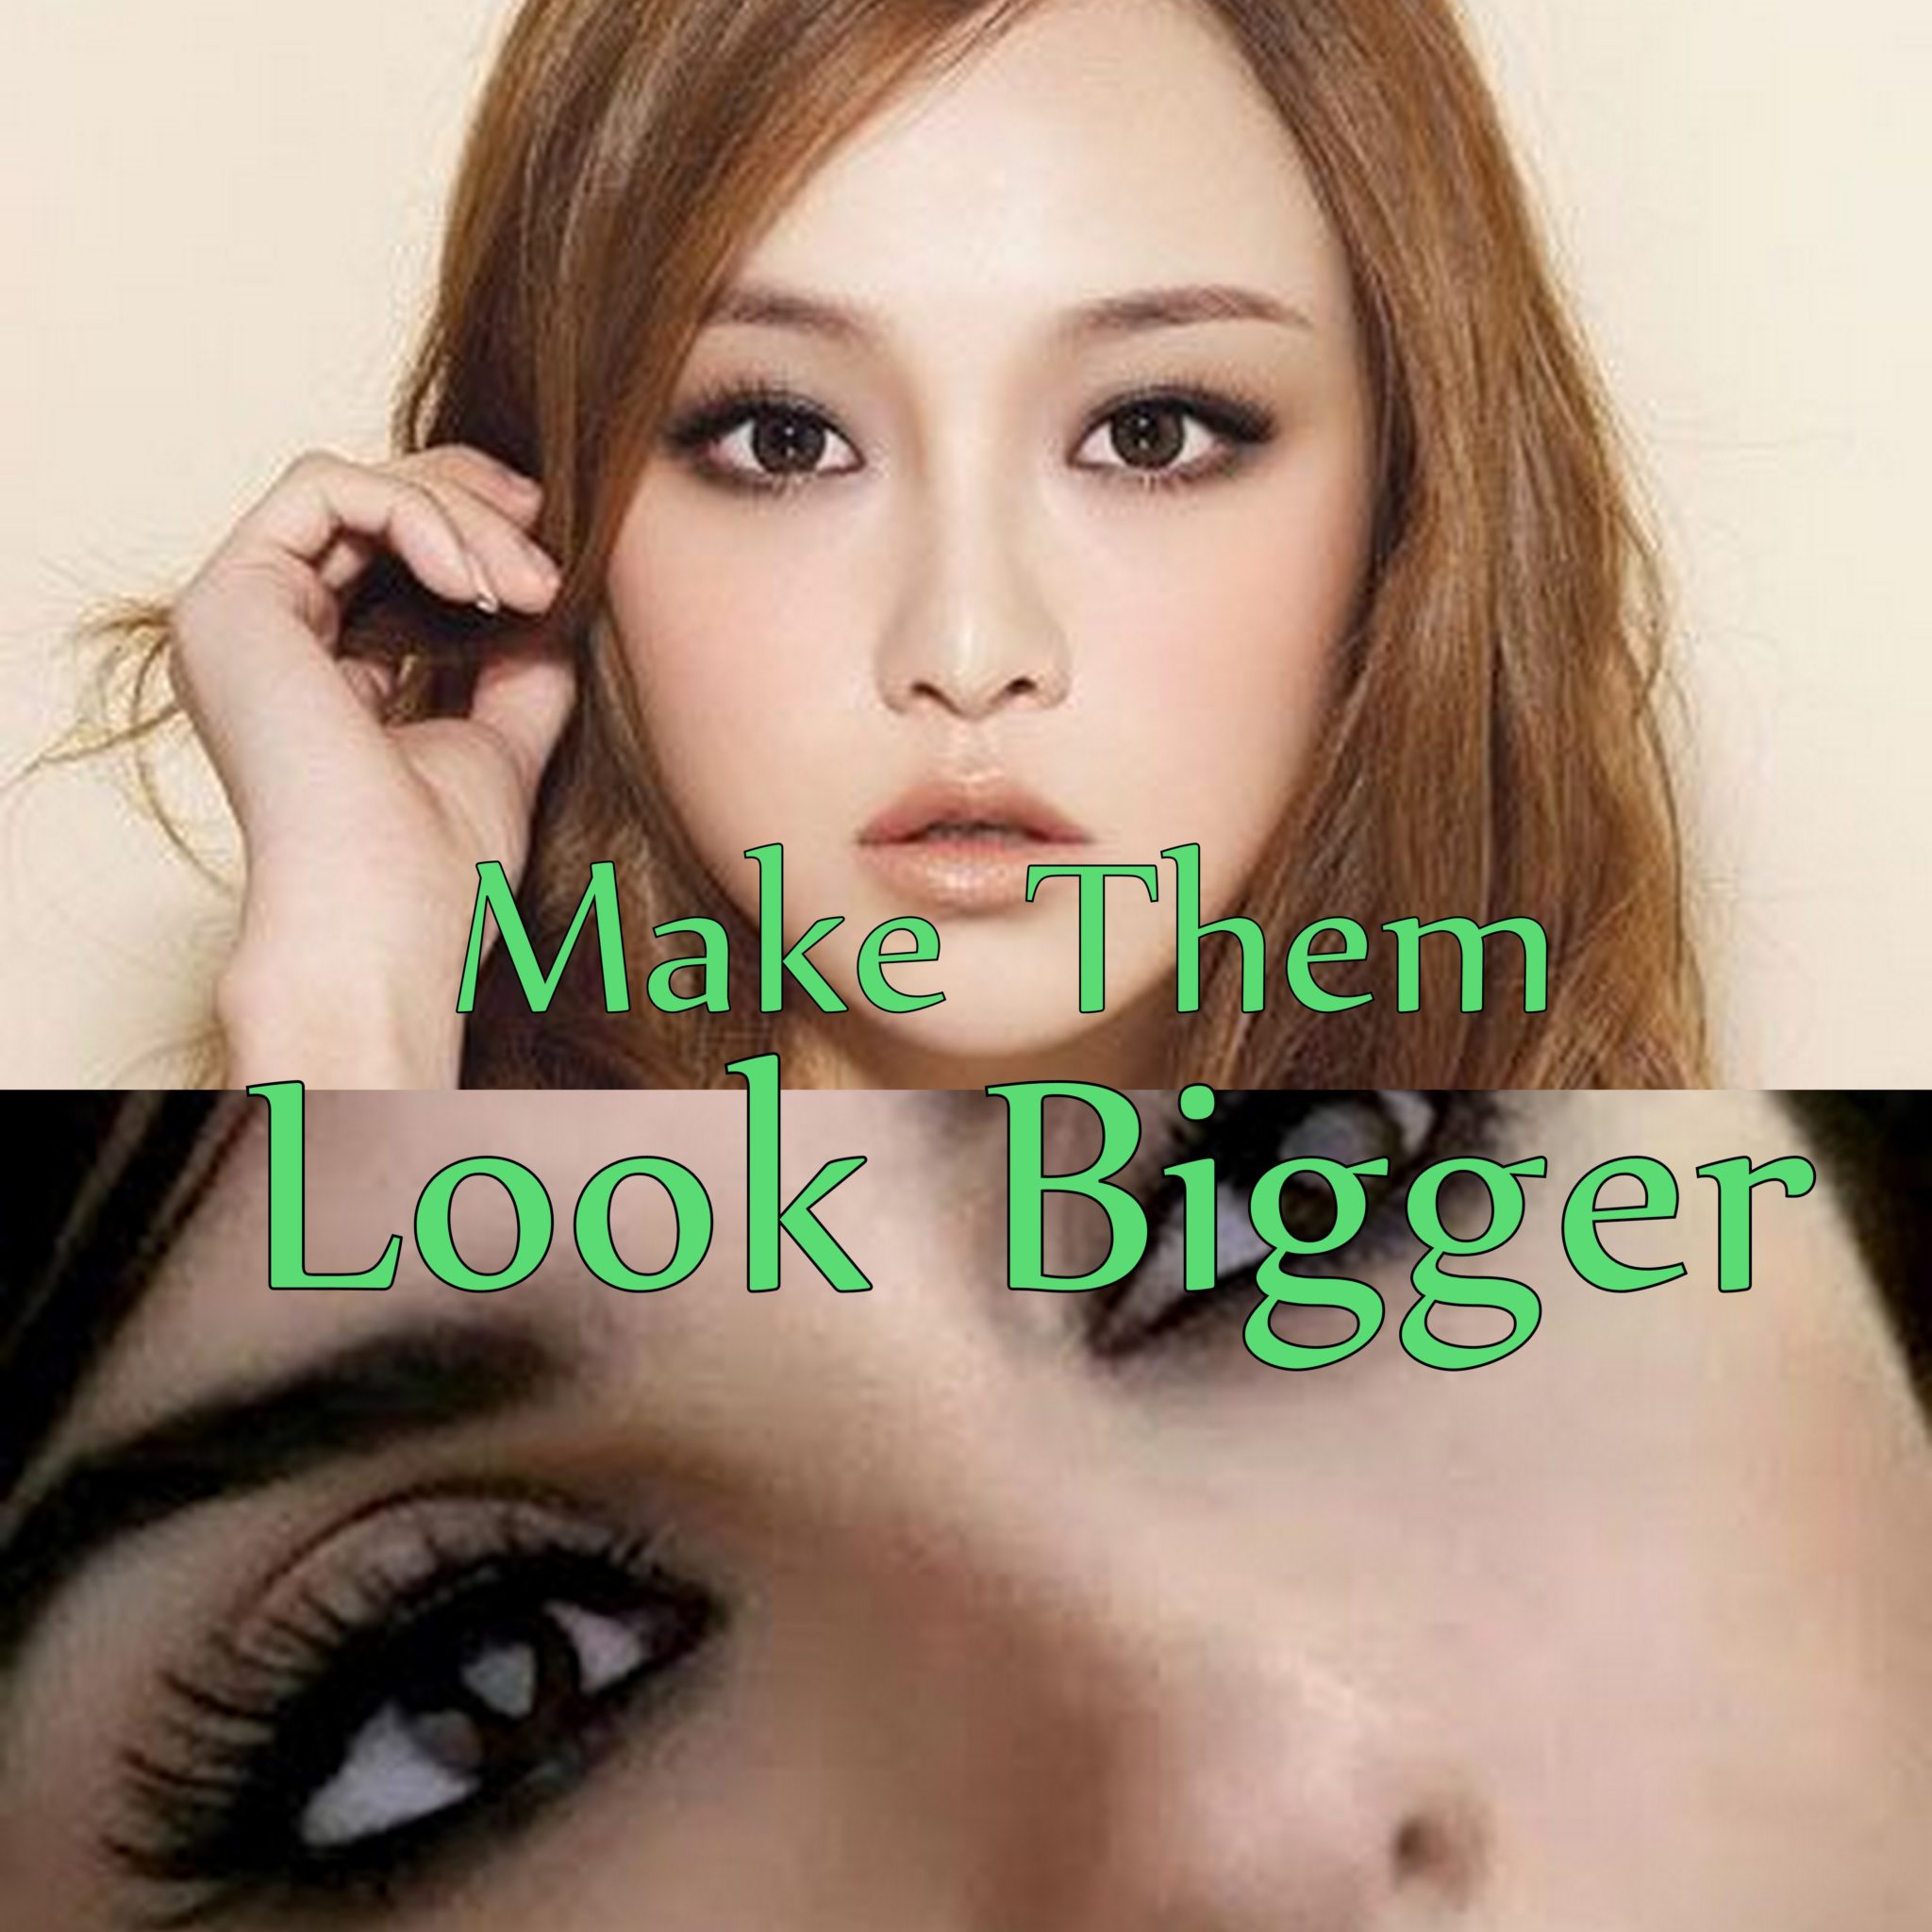 Makeup that makes eyes look bigger